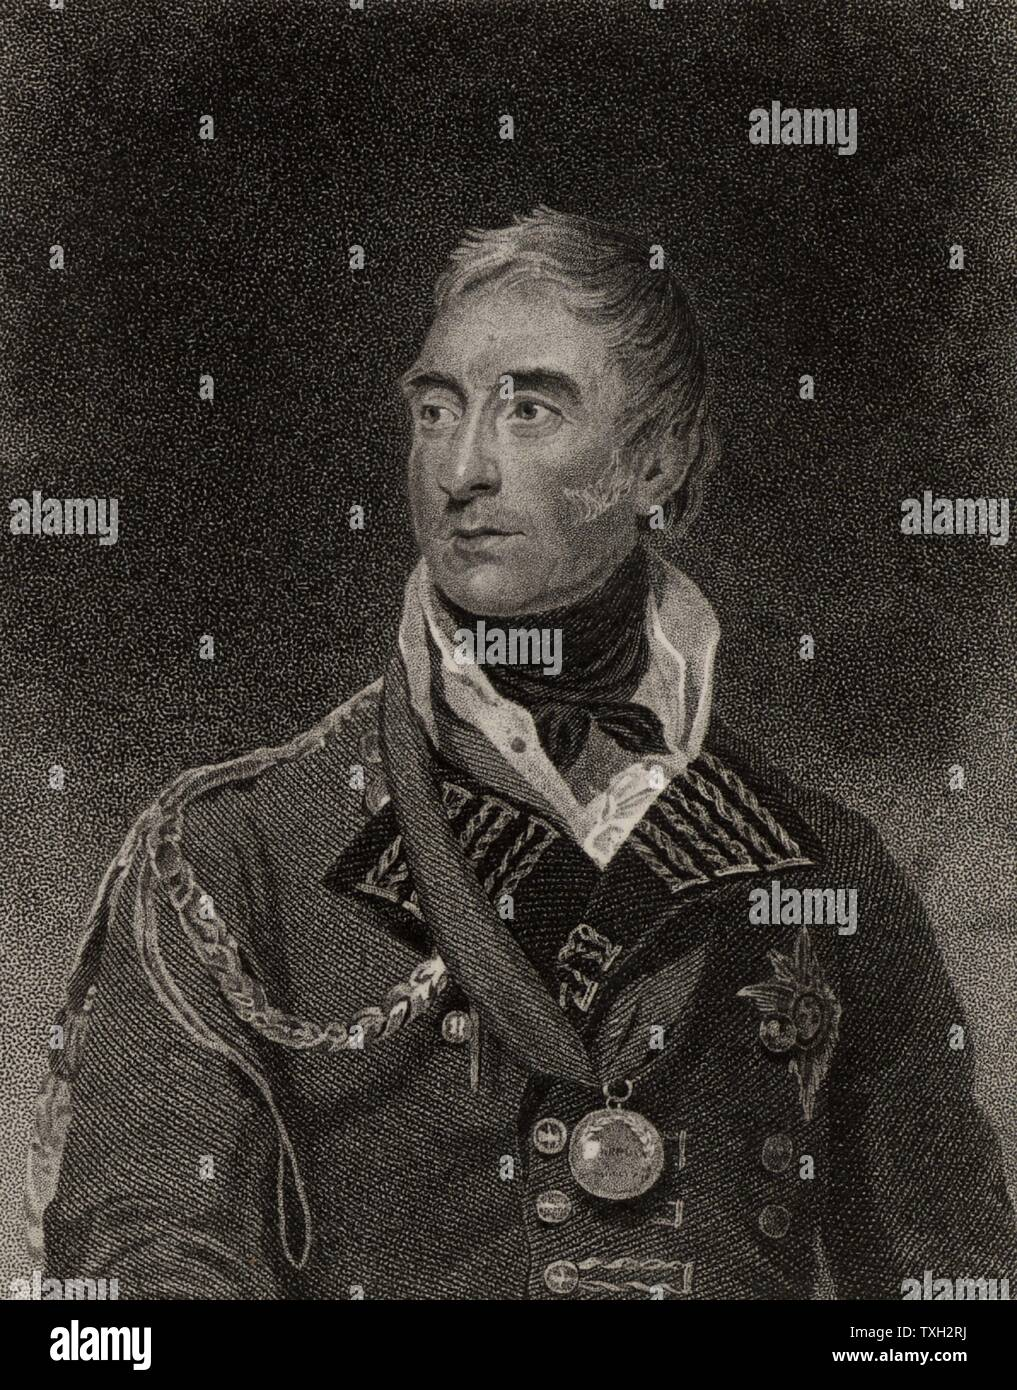 Thomas Graham, Baron Lynedoch (1750-1843) Scottish general who fought in  the Napoleonic Wars. He served under Sir John Moore in Portugal in the Peninsular campaign. Victorious at Barossa 1811. Commanded left wing at Vittoria 1813. Stipple engraving from 'History of the Wars Occasioned by the French Revolution...' by CH Gifford (London, 1817). - Stock Image